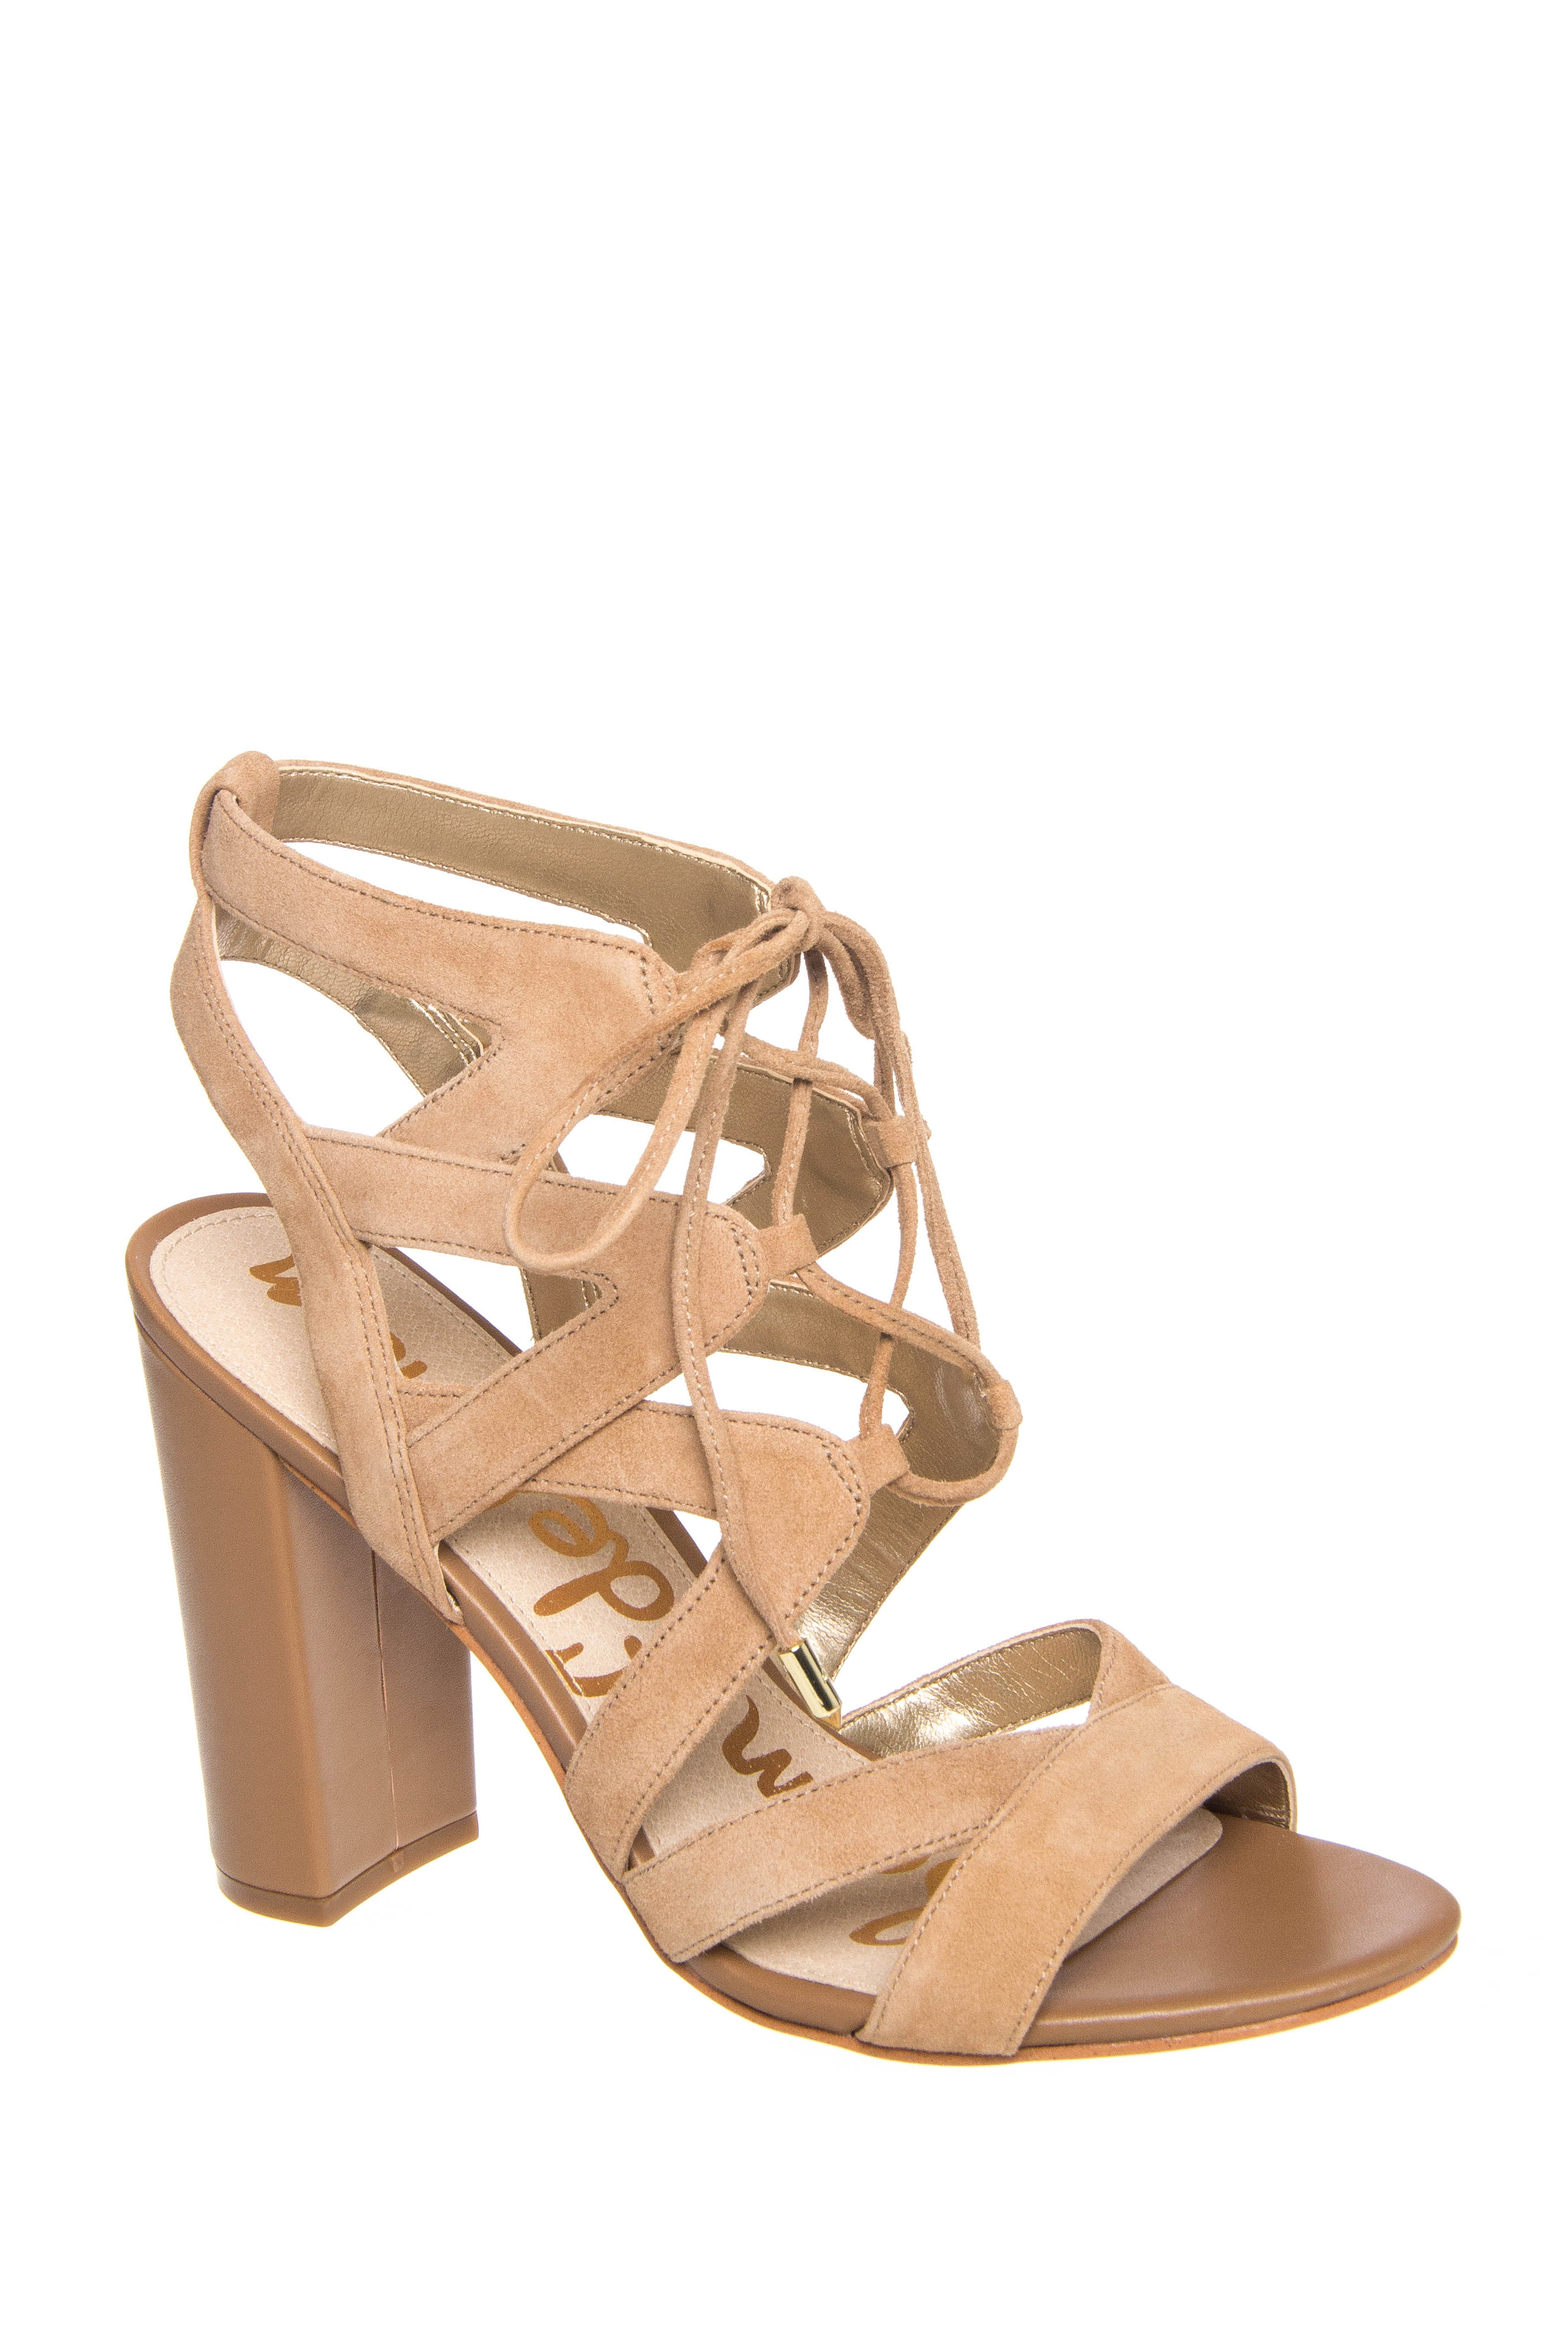 Sam Edelman Yardley High Heel Lace Up Sandals